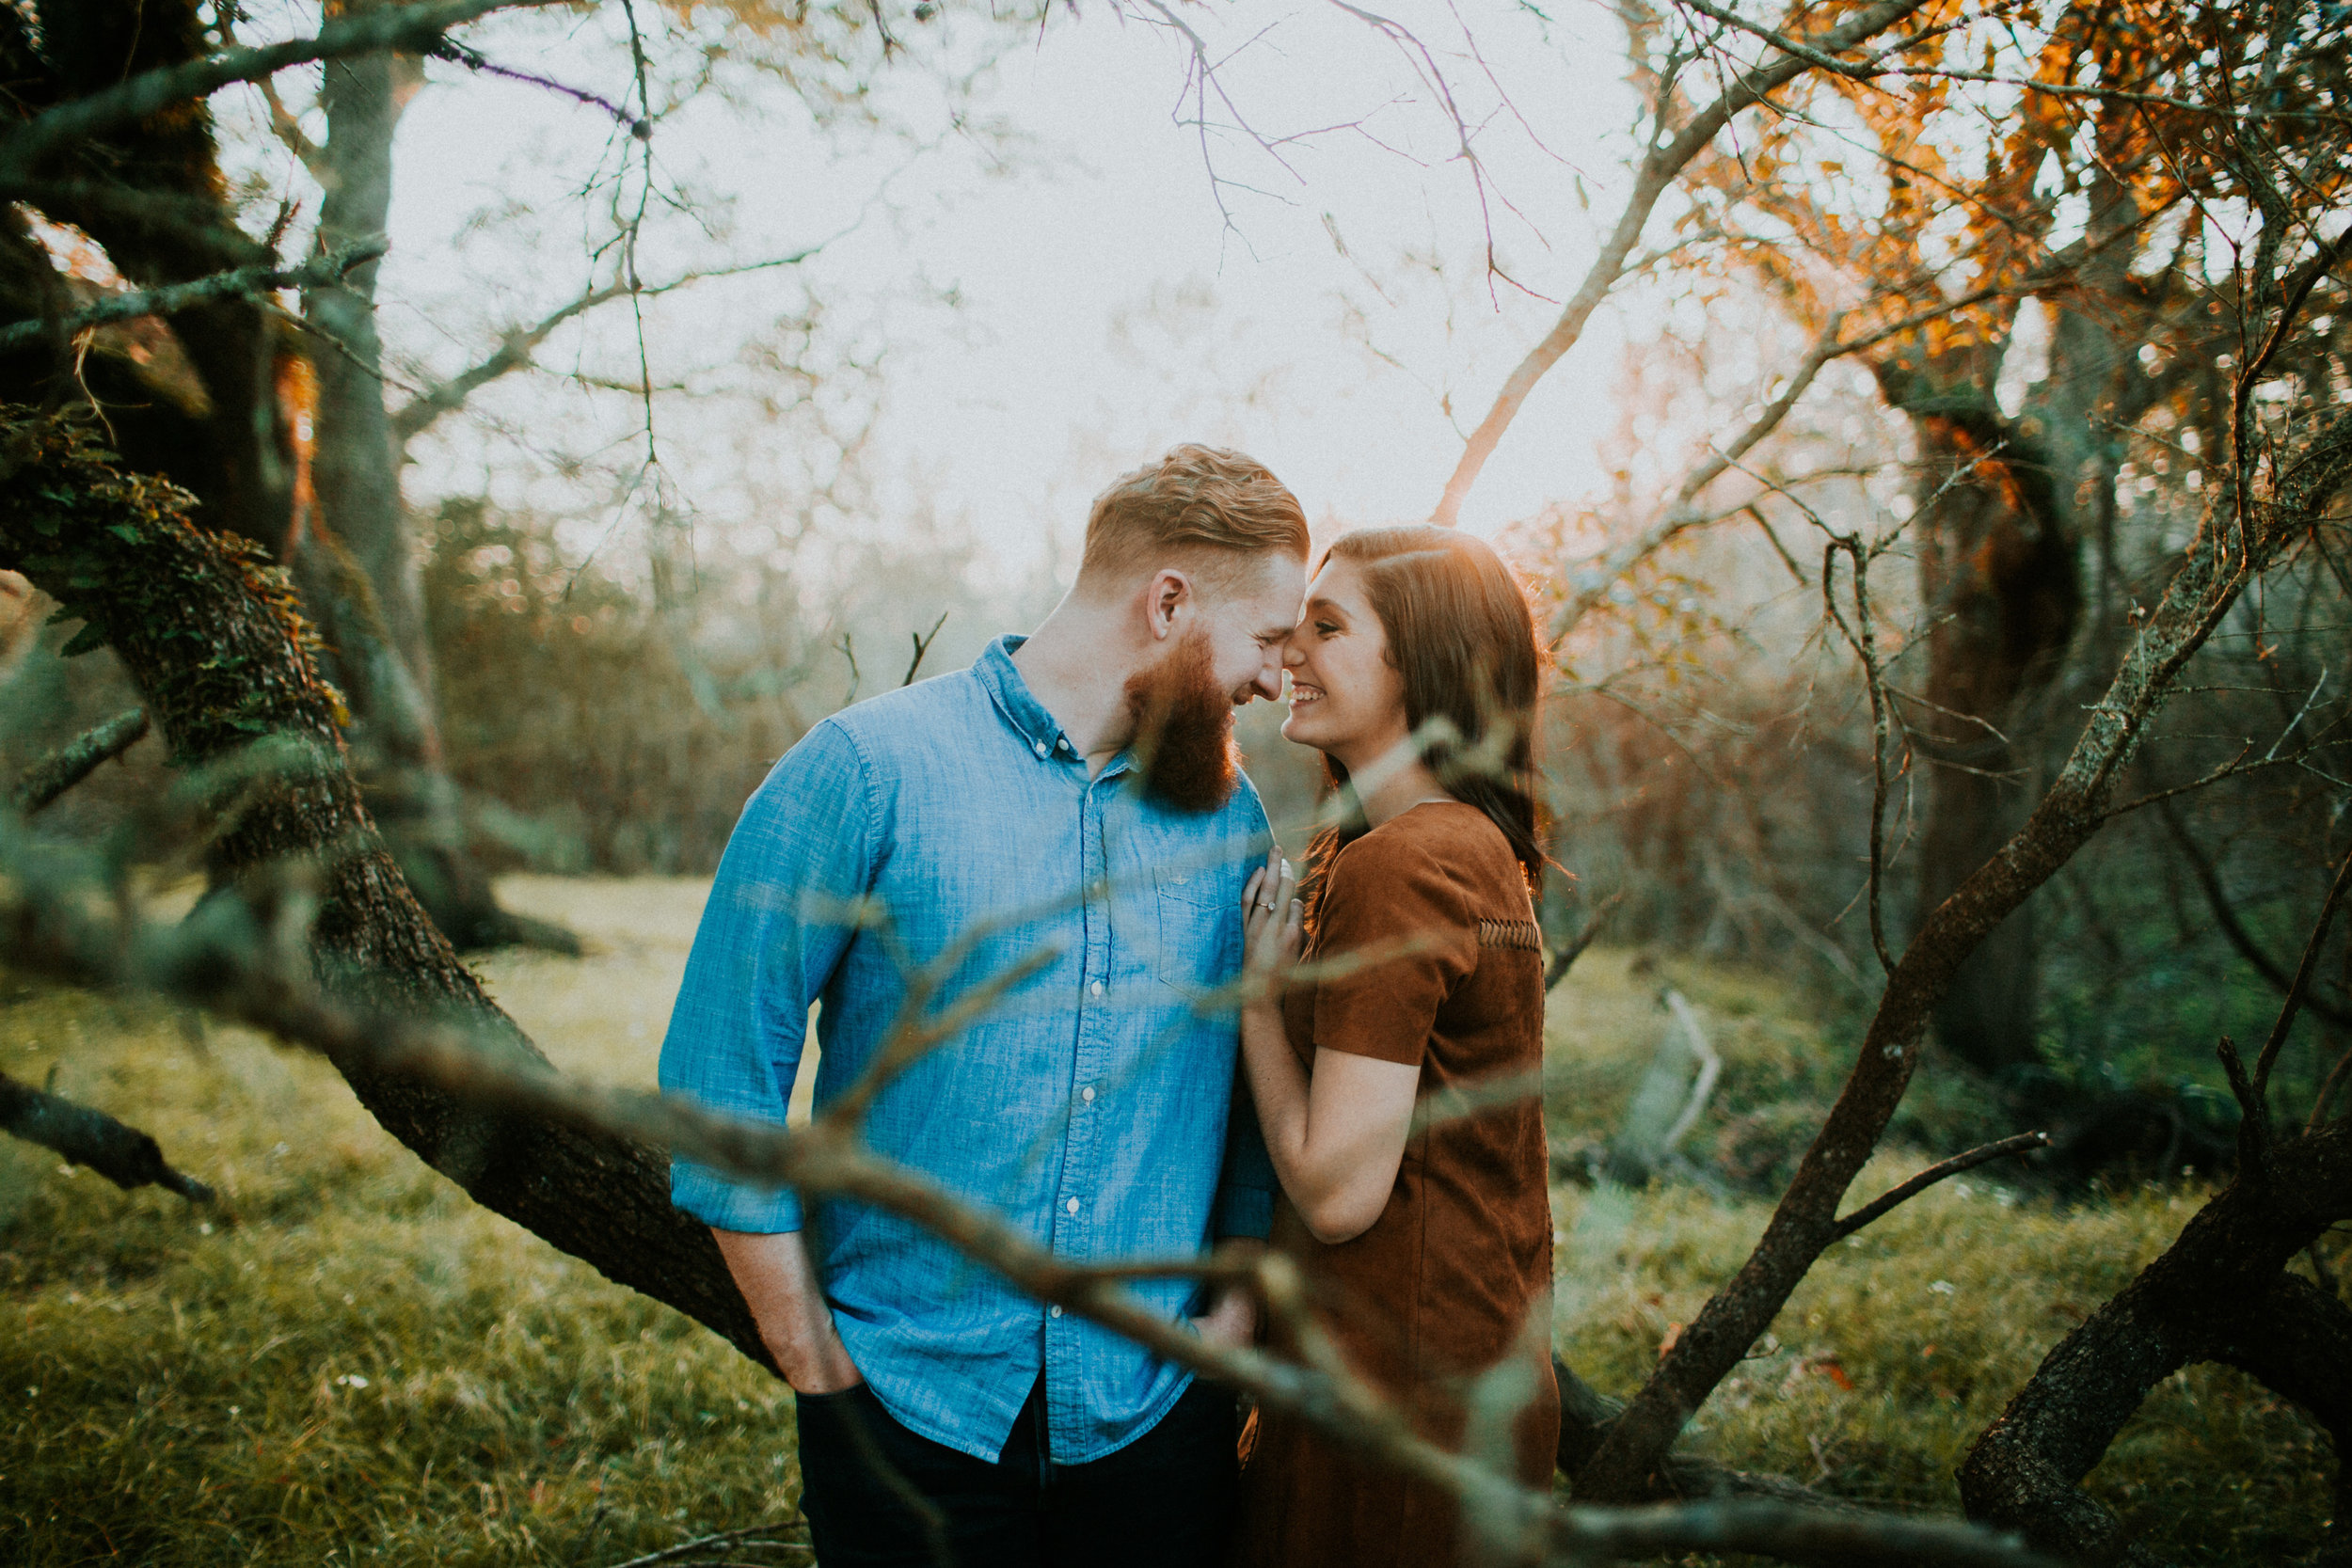 Erin_and_Jacob___The_Frost_Collective_Engagement_Session_1255.jpg